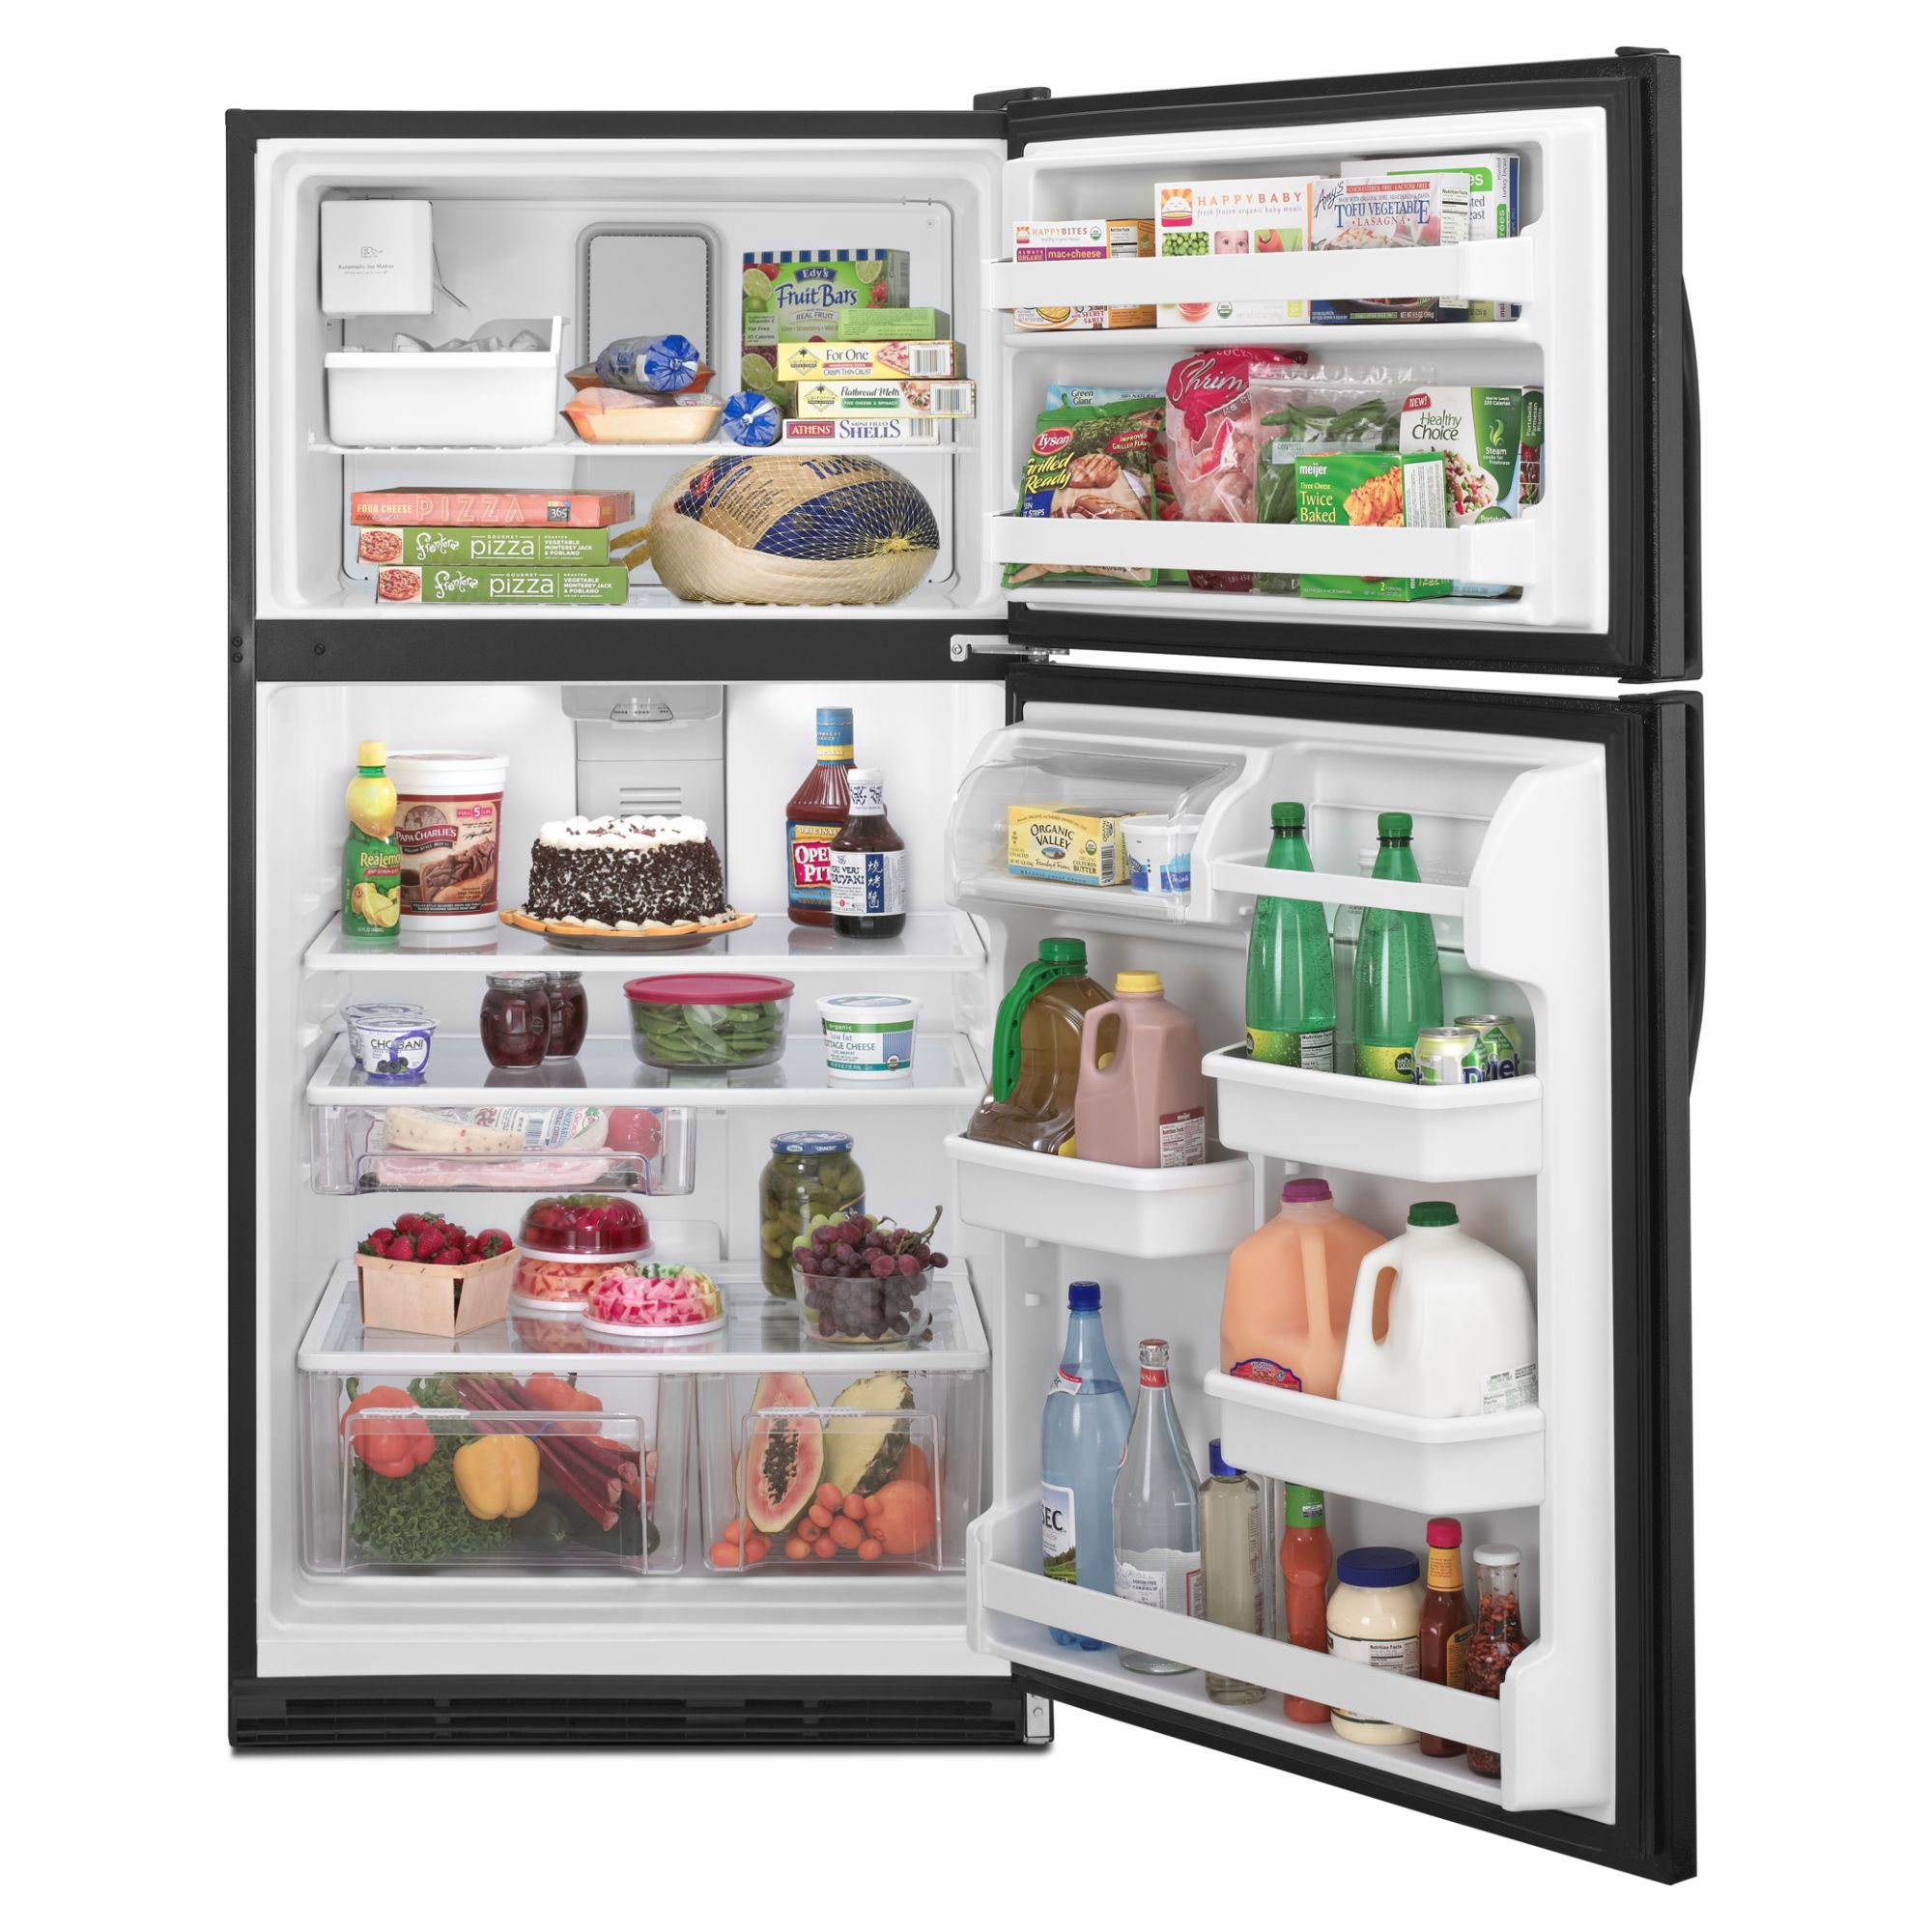 Maytag 20.6 cu. ft. Top-Freezer Refrigerator w/ FreshLock™ Crispers - Bisque